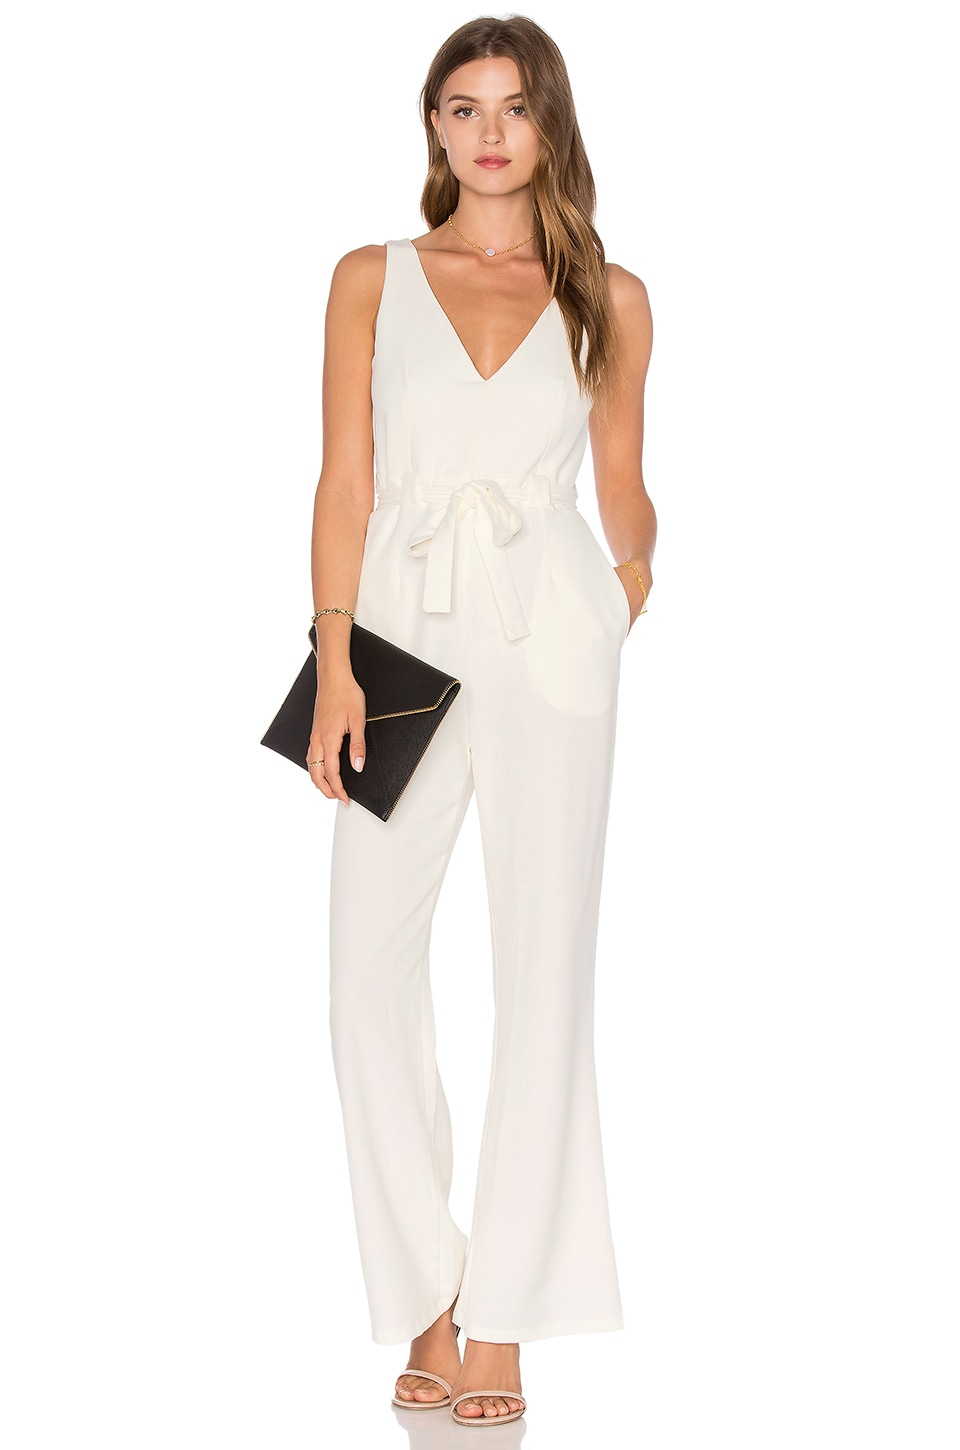 Twin Sister Tie Wrap Jumpsuit in White